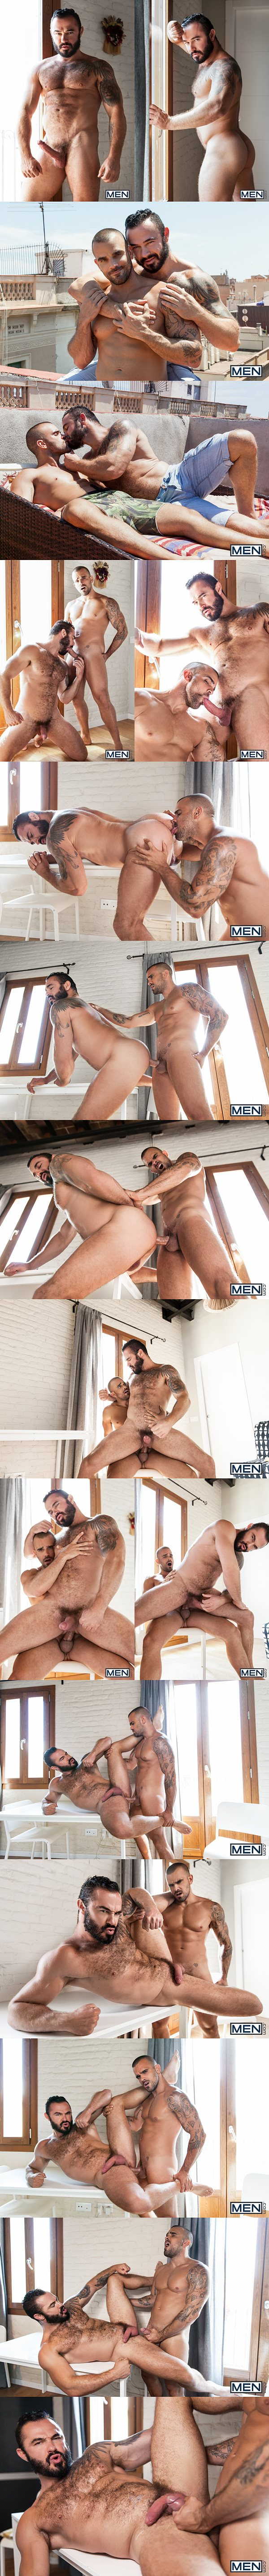 Damien Crosse fucks hot hairy muscle hunk Jessy Ares in A Return at Drillmyhole 02